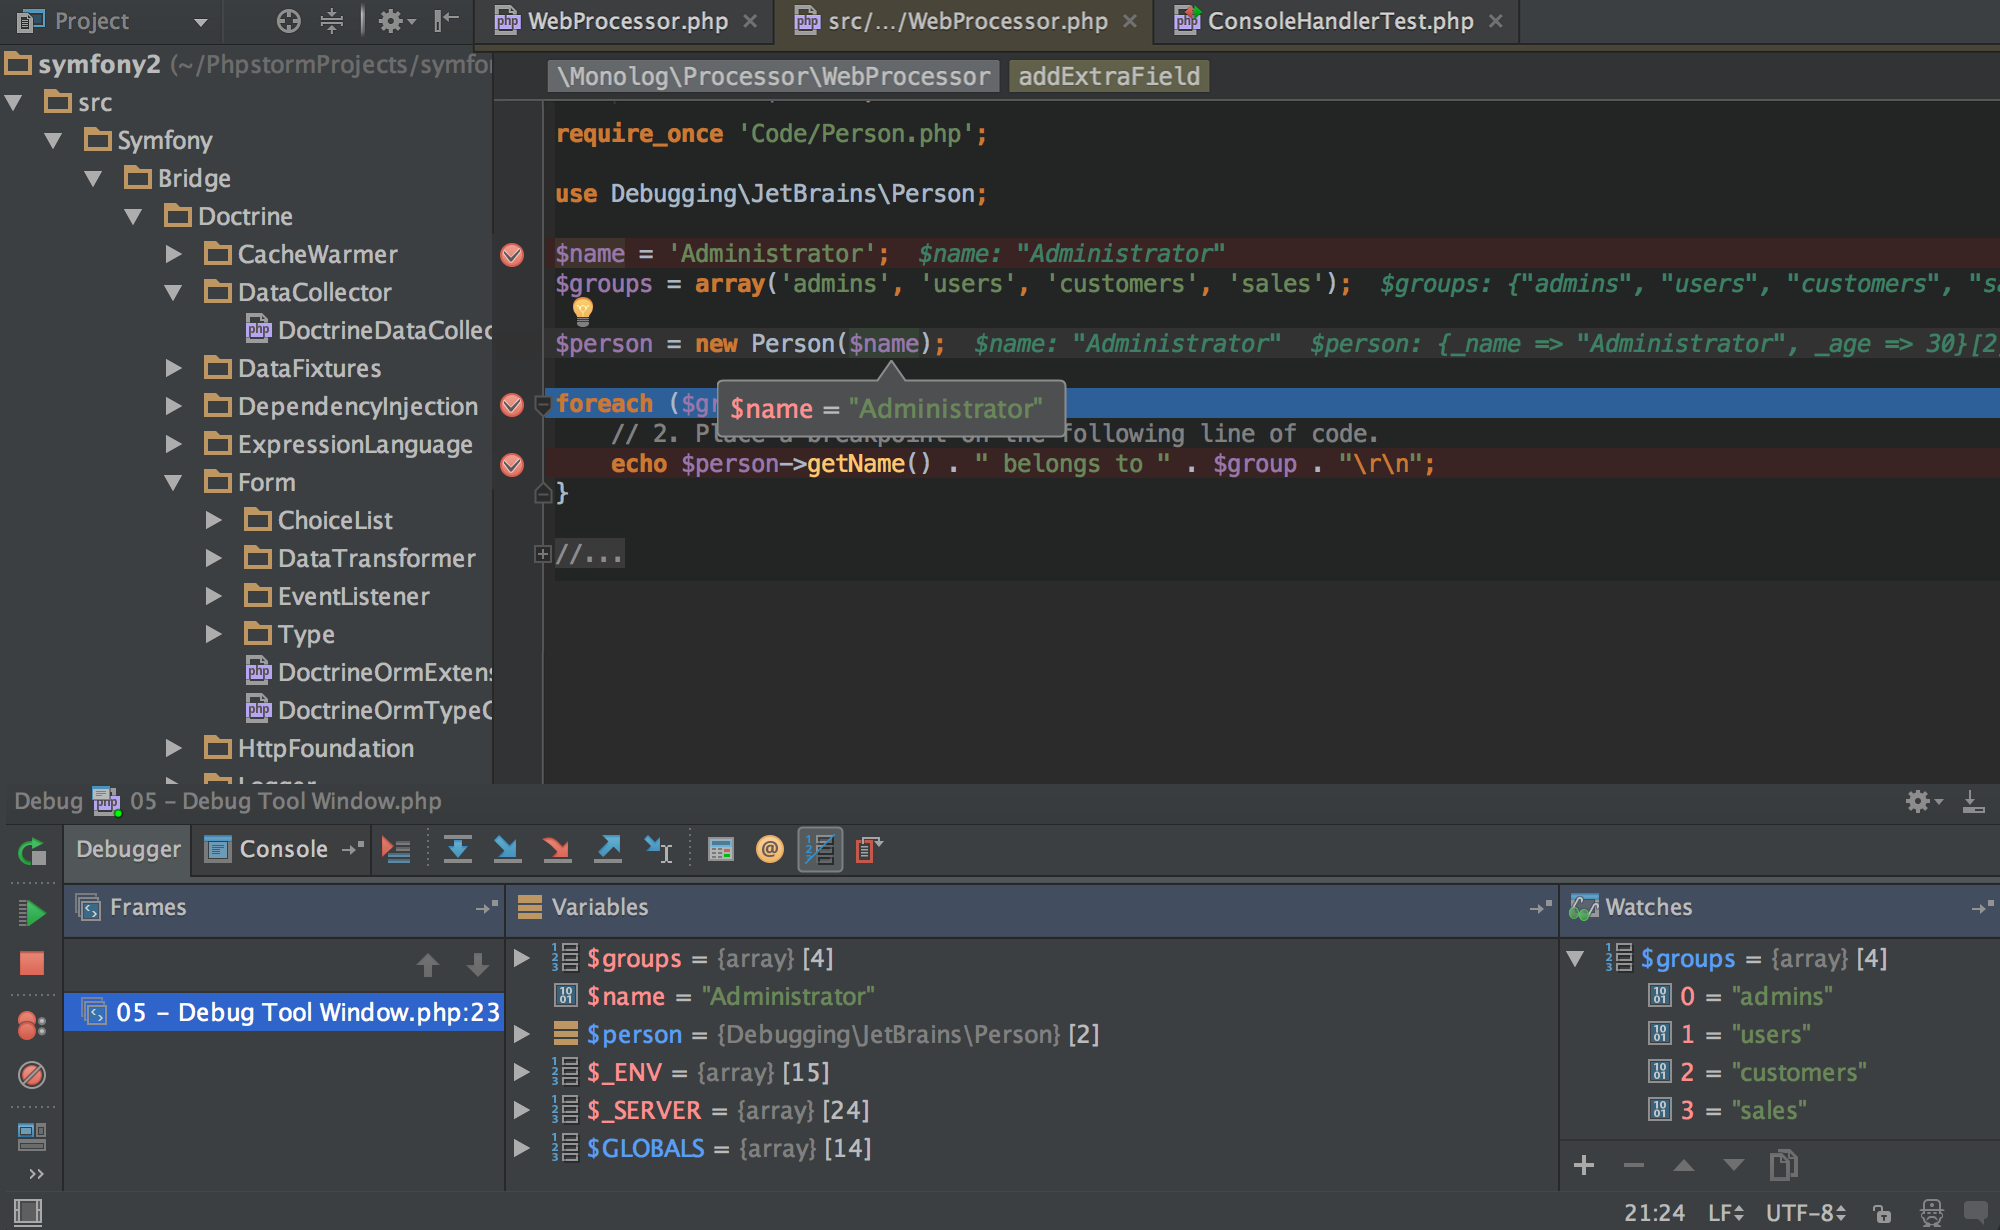 Captura de PHPStorm